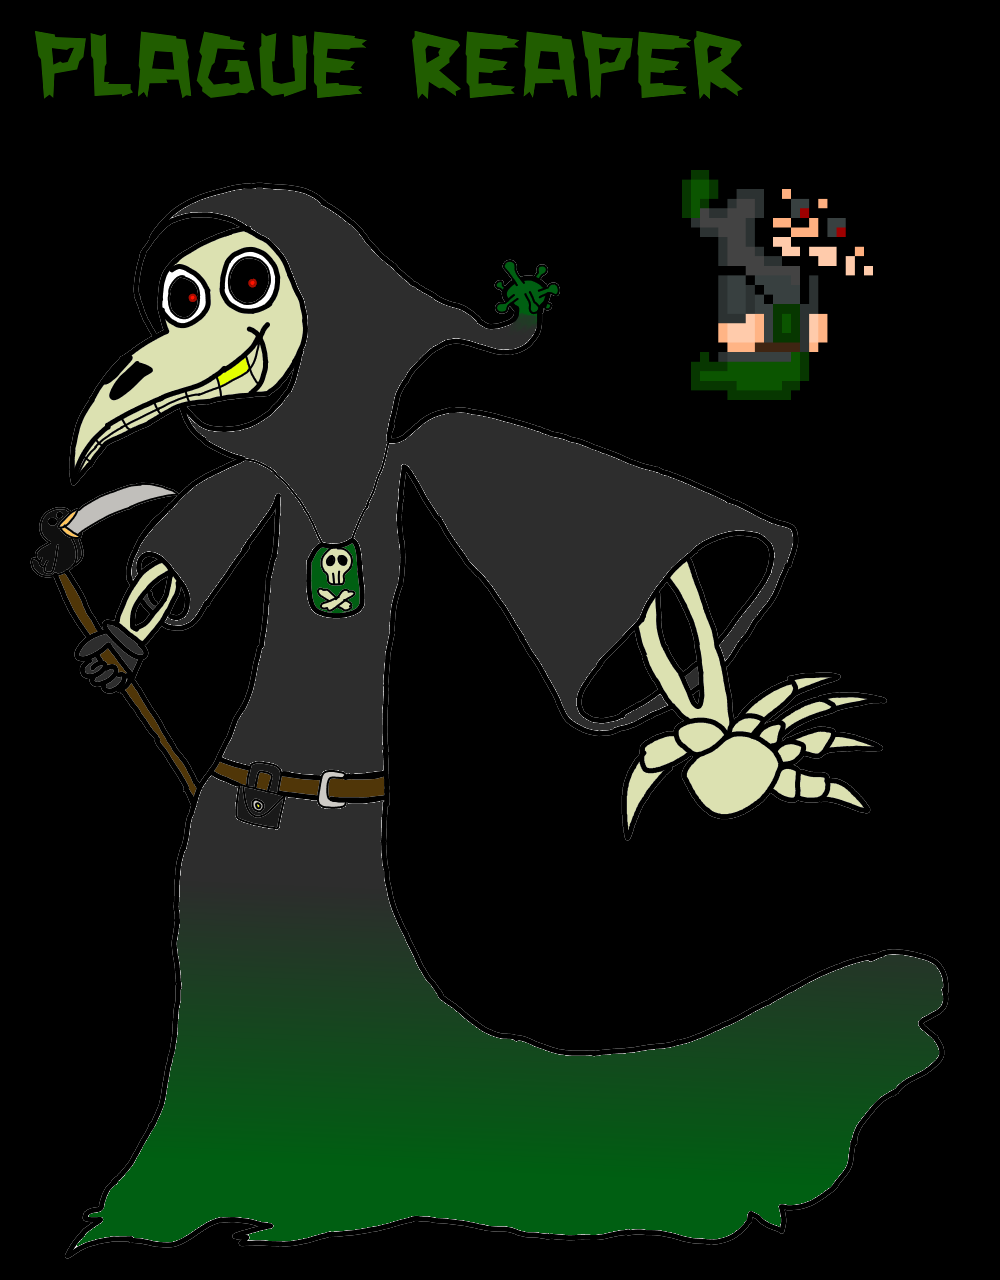 Plague Reaper Submission.png